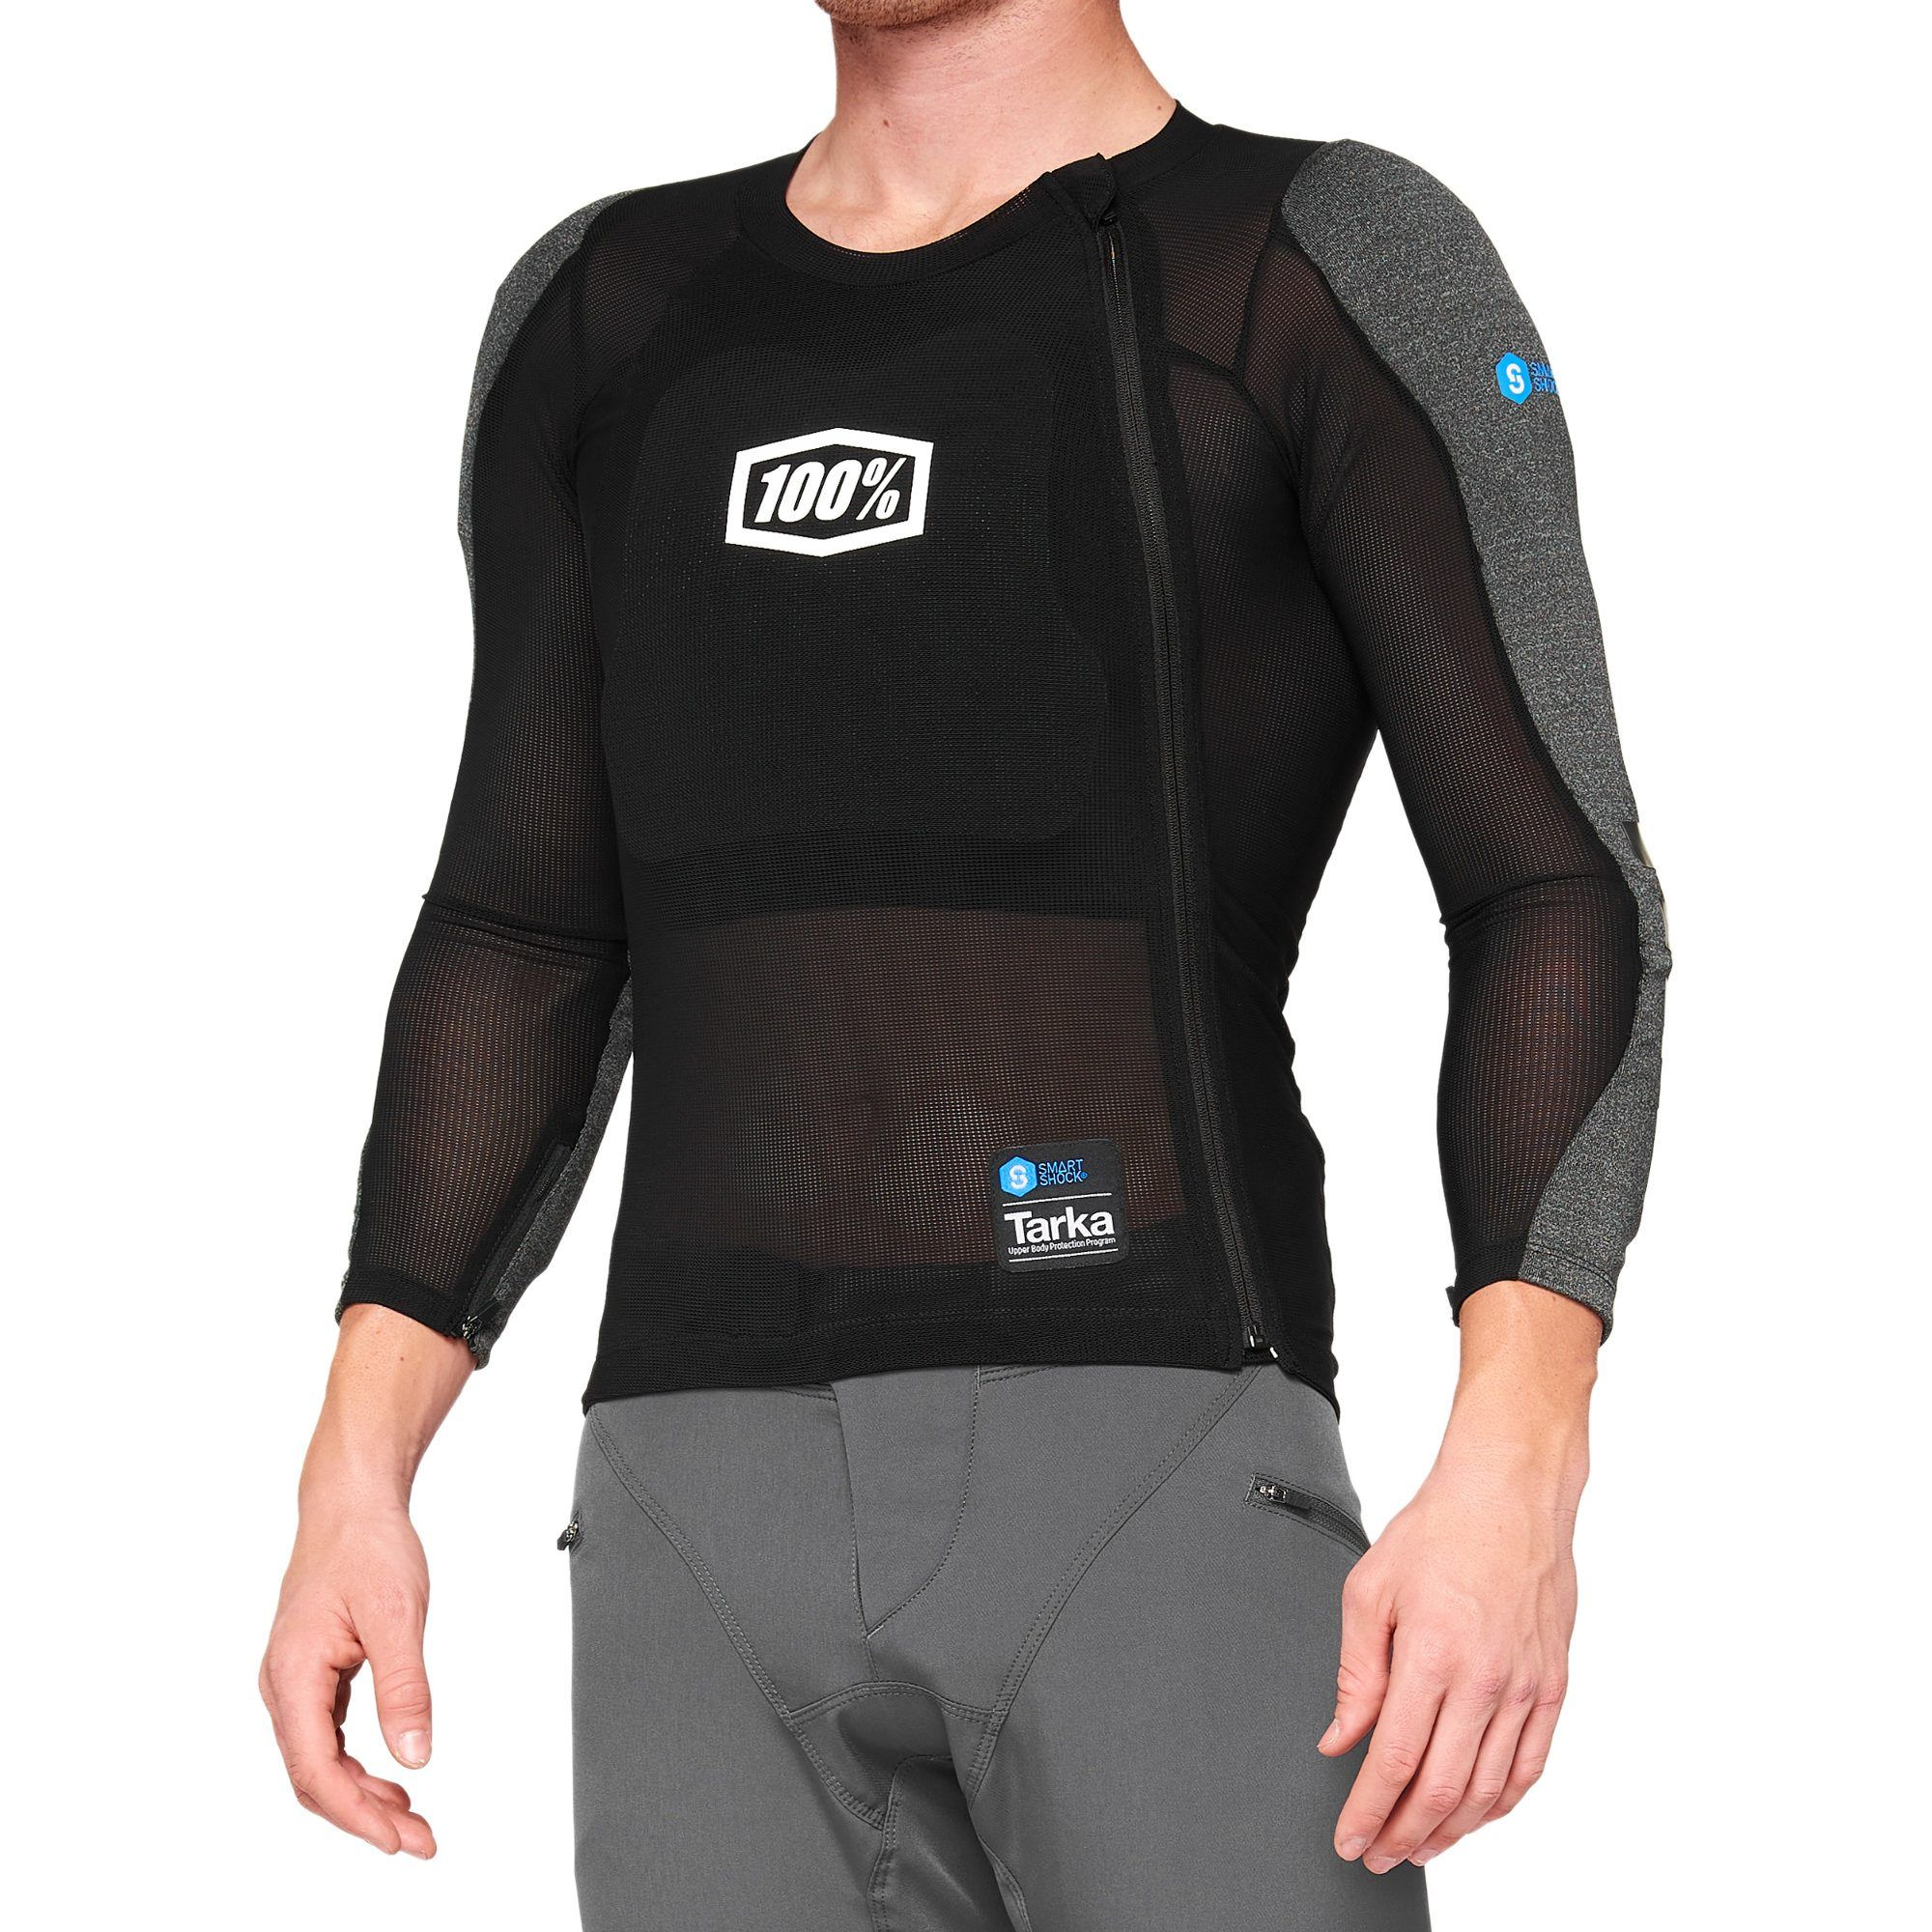 100% Tarka Long Sleeve Protection Top